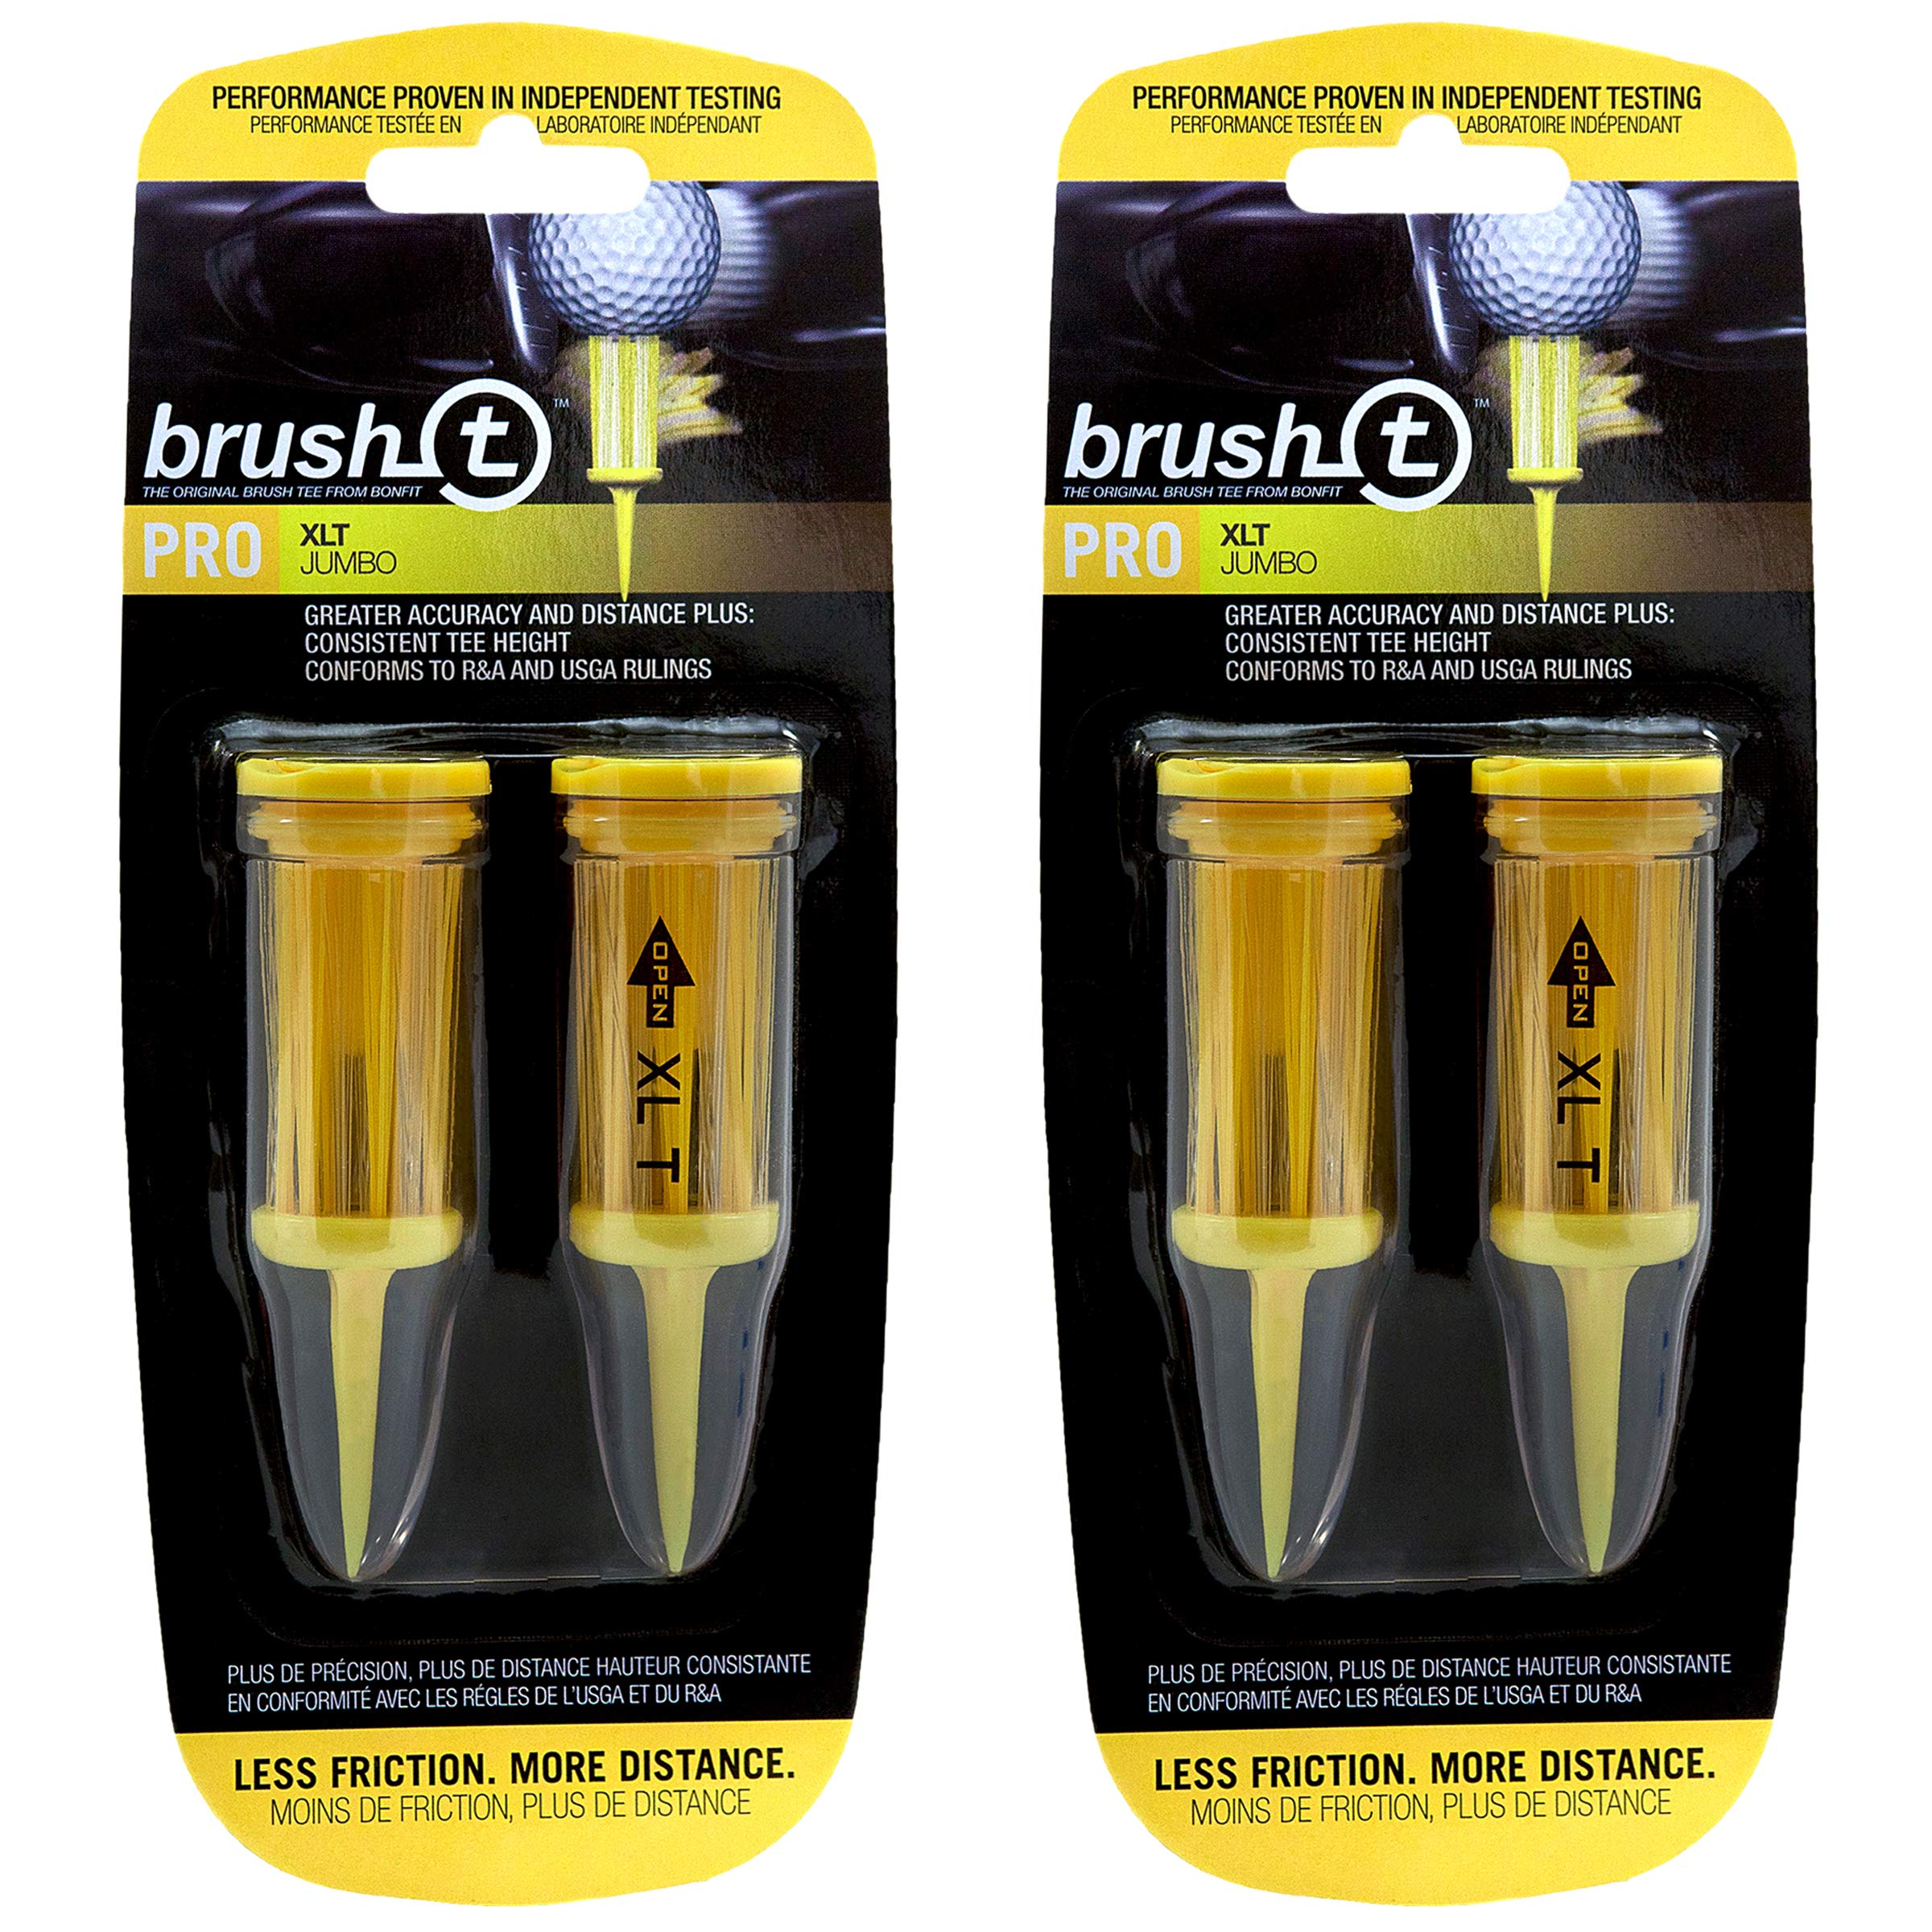 Brush T Extreme 3 1/8'' Golf Tees - Yellow - 2 Packs of 2 - (11904) by Brush T